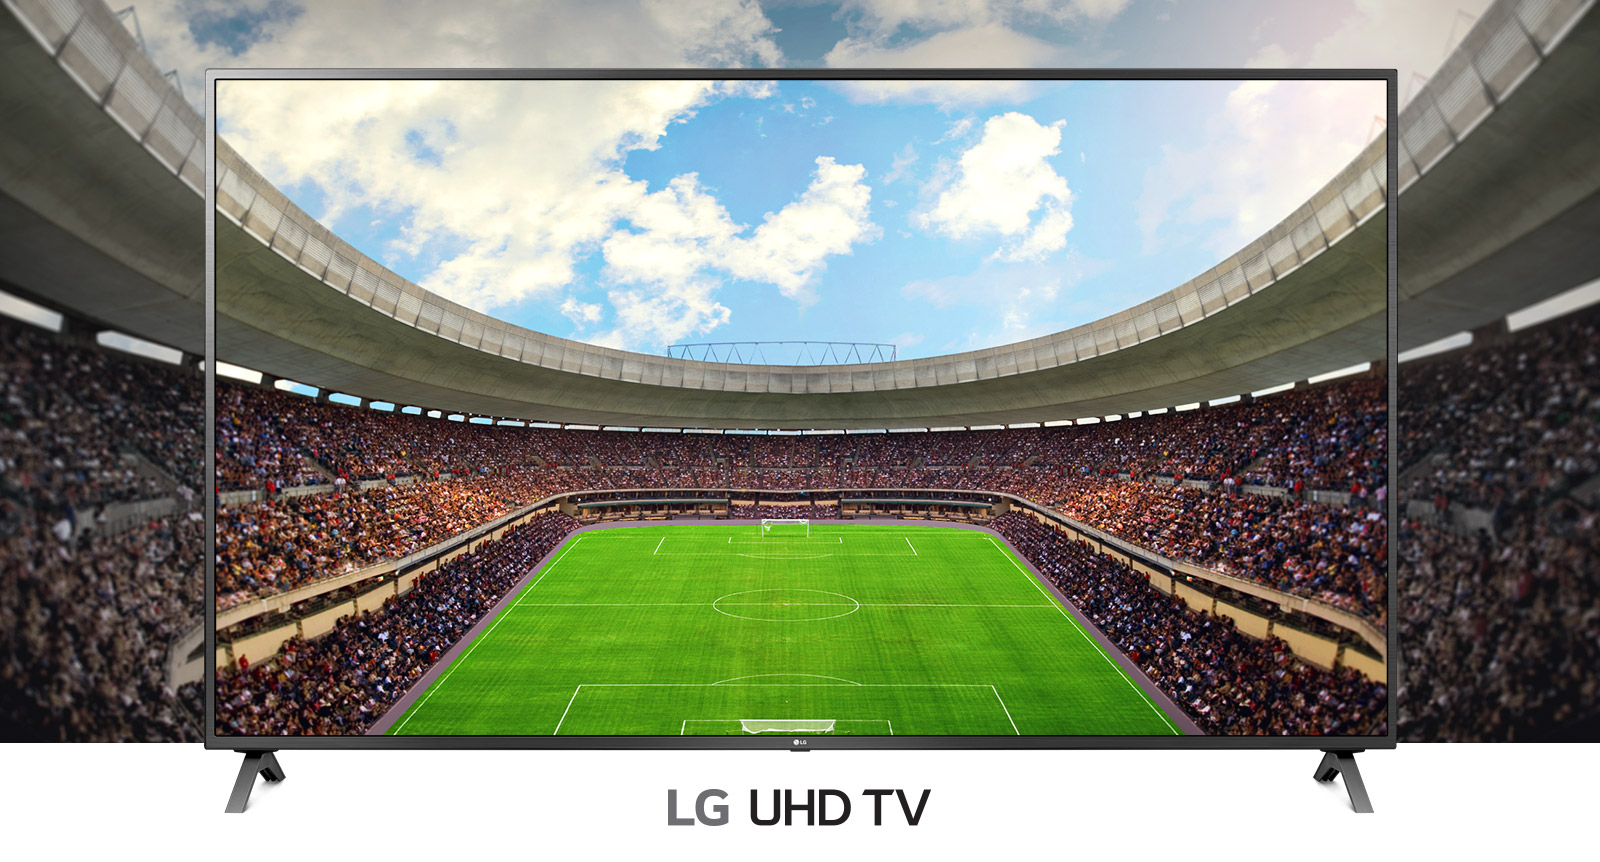 LG UN71 4K Smart UHD TV